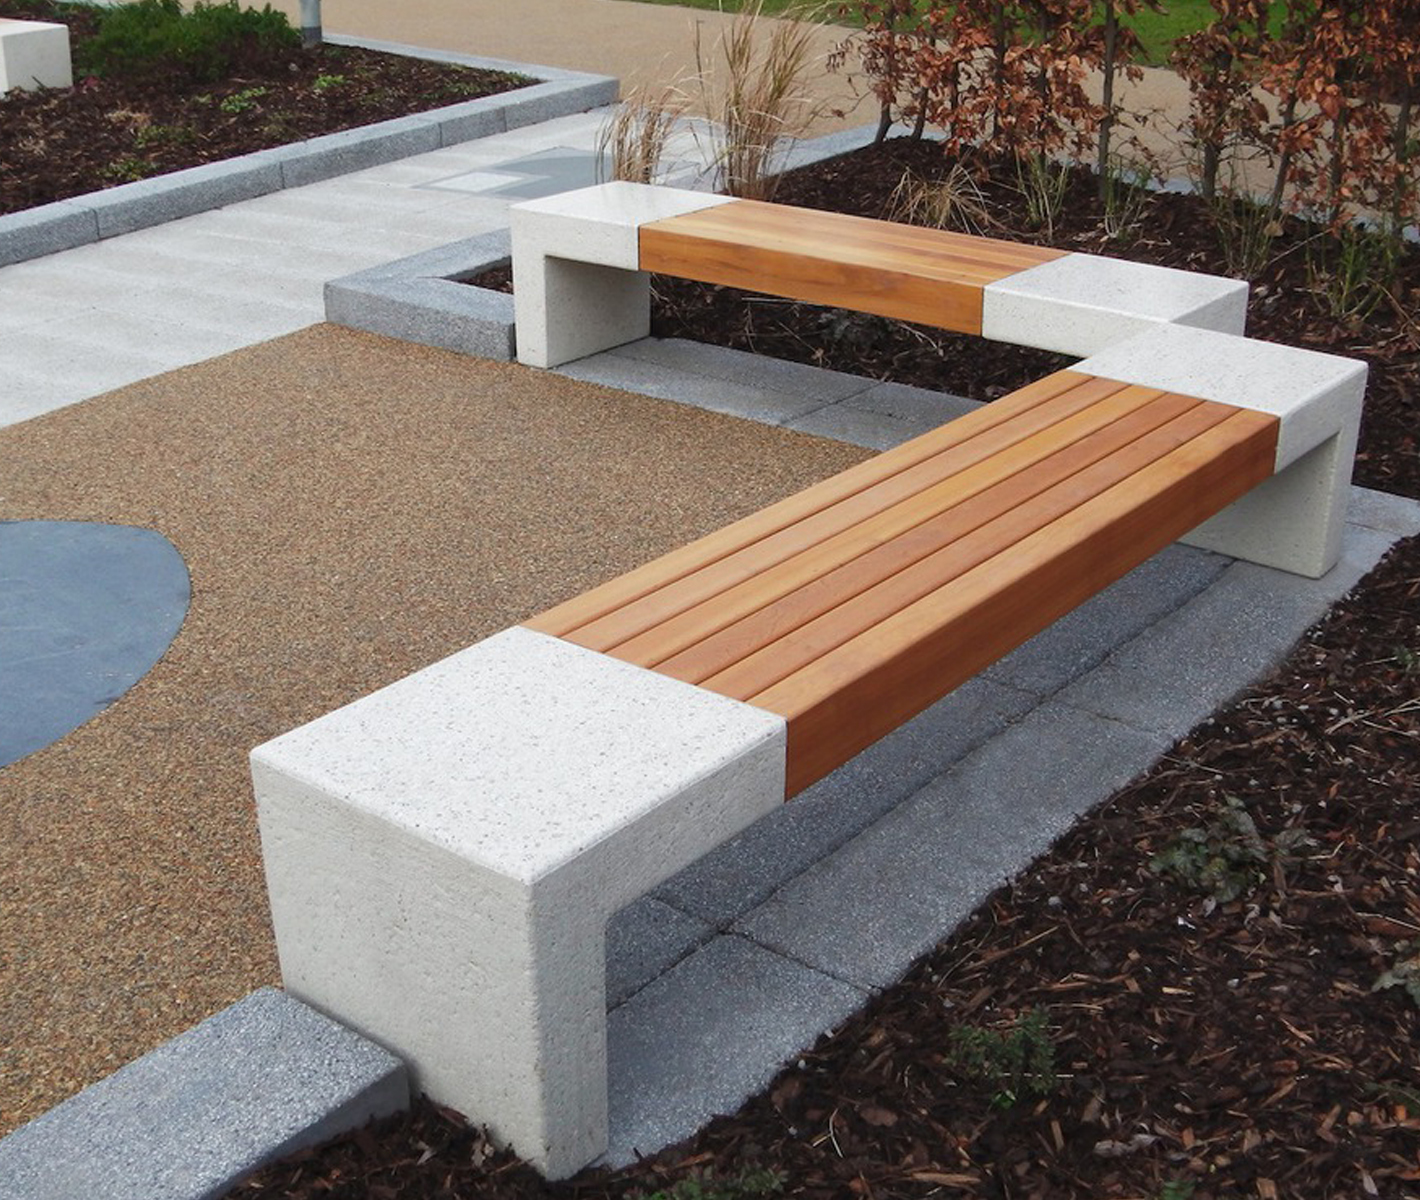 Stone And Wood Bench: Giada PDM Concrete Wood Bench 9